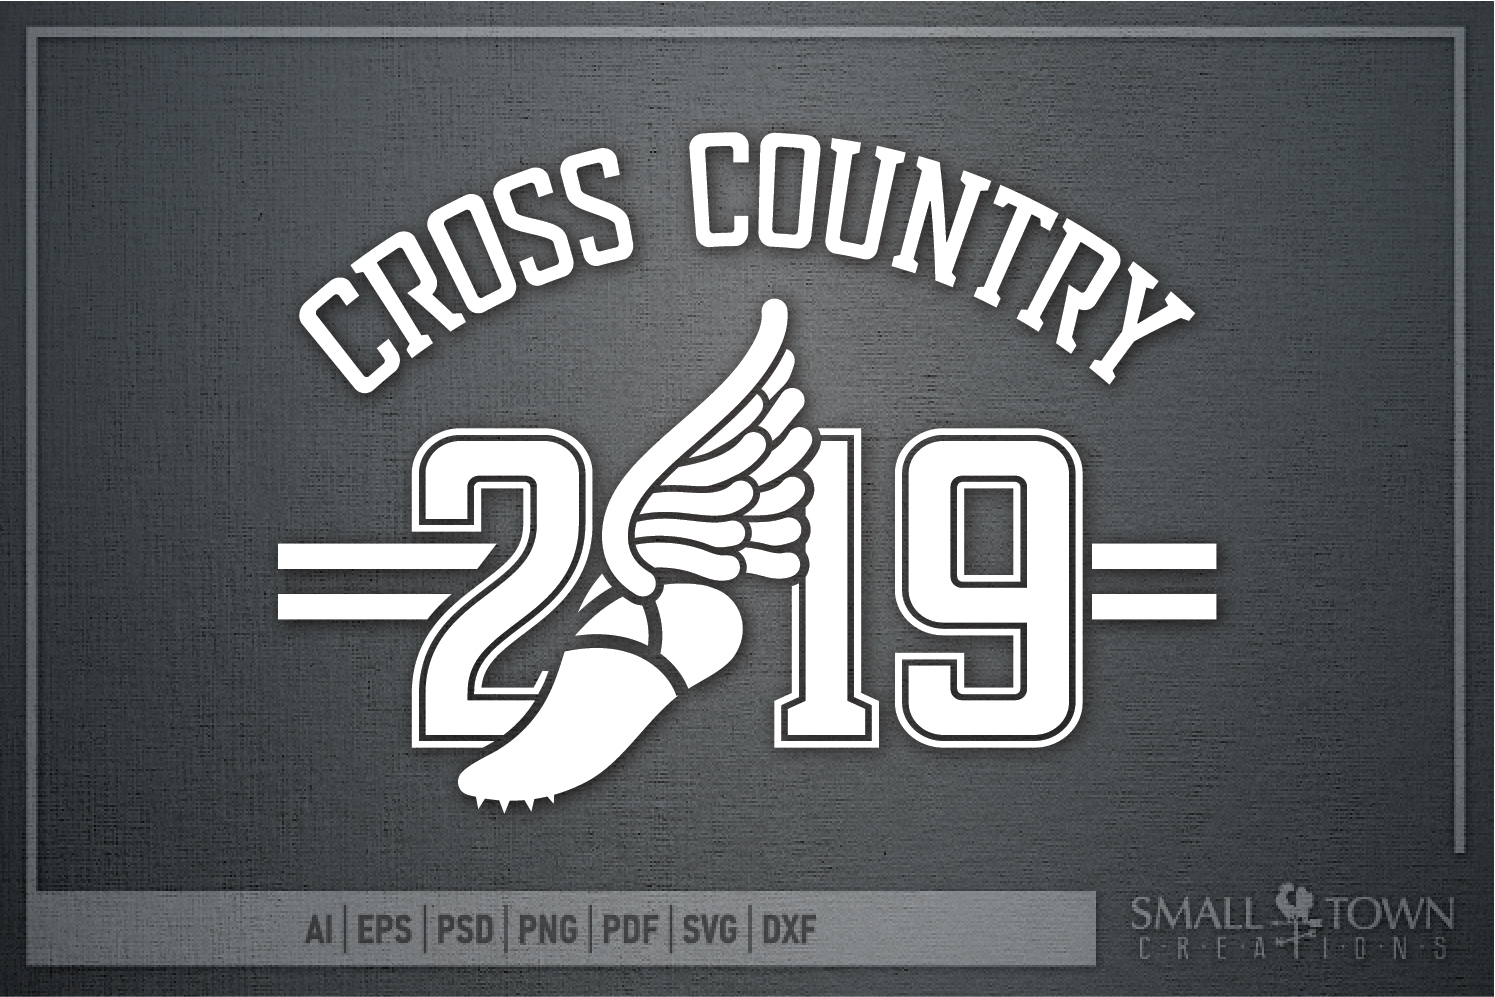 Cross Country, Running logo, Winged shoe, PRINT, CUT, DESIGN example image 5